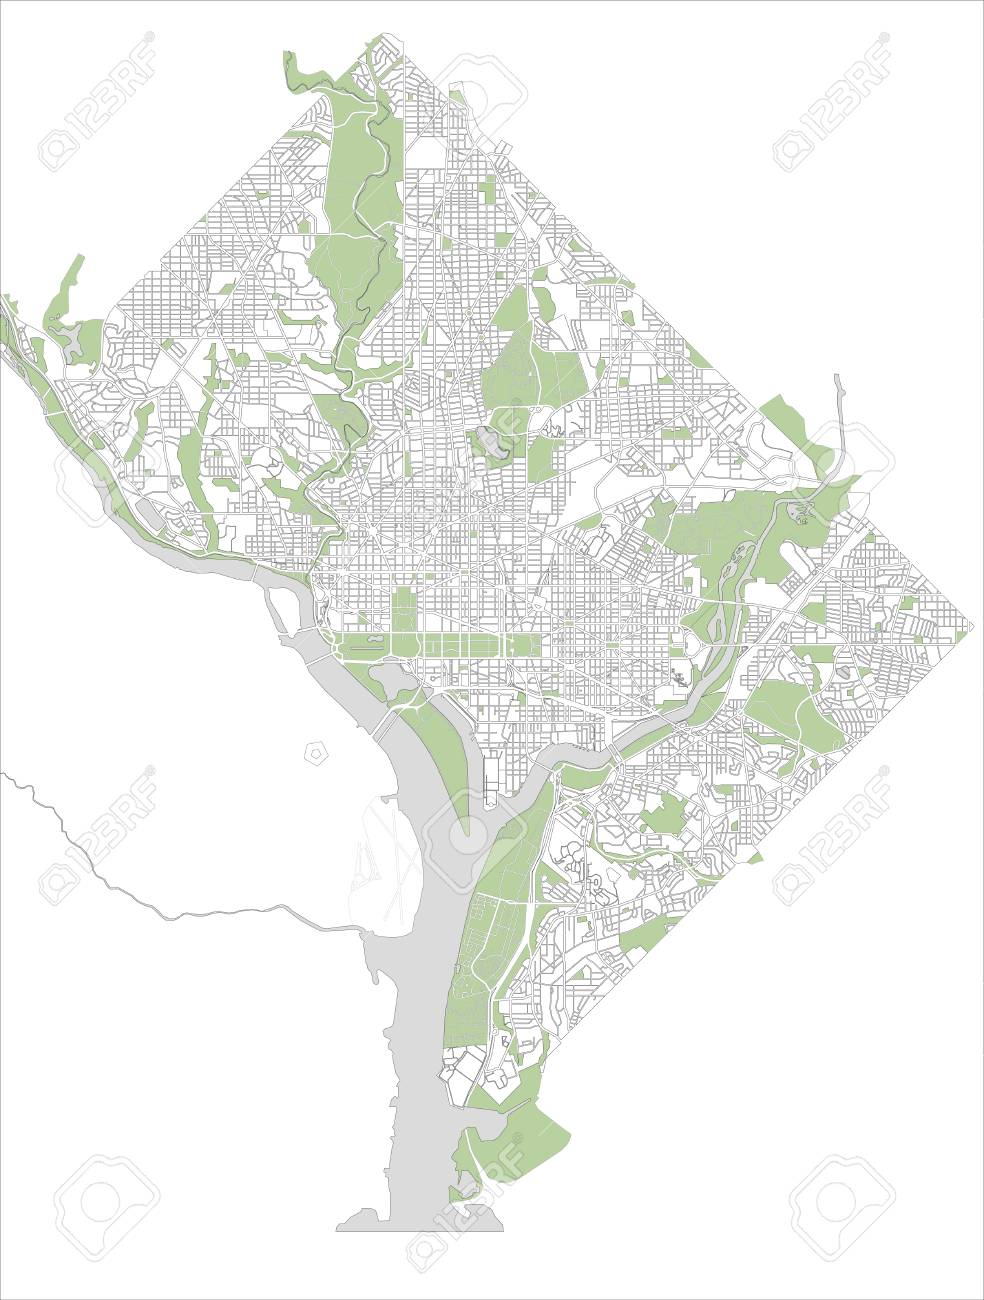 Map Of The City Of Washington, D.C., USA Royalty Free Cliparts ...